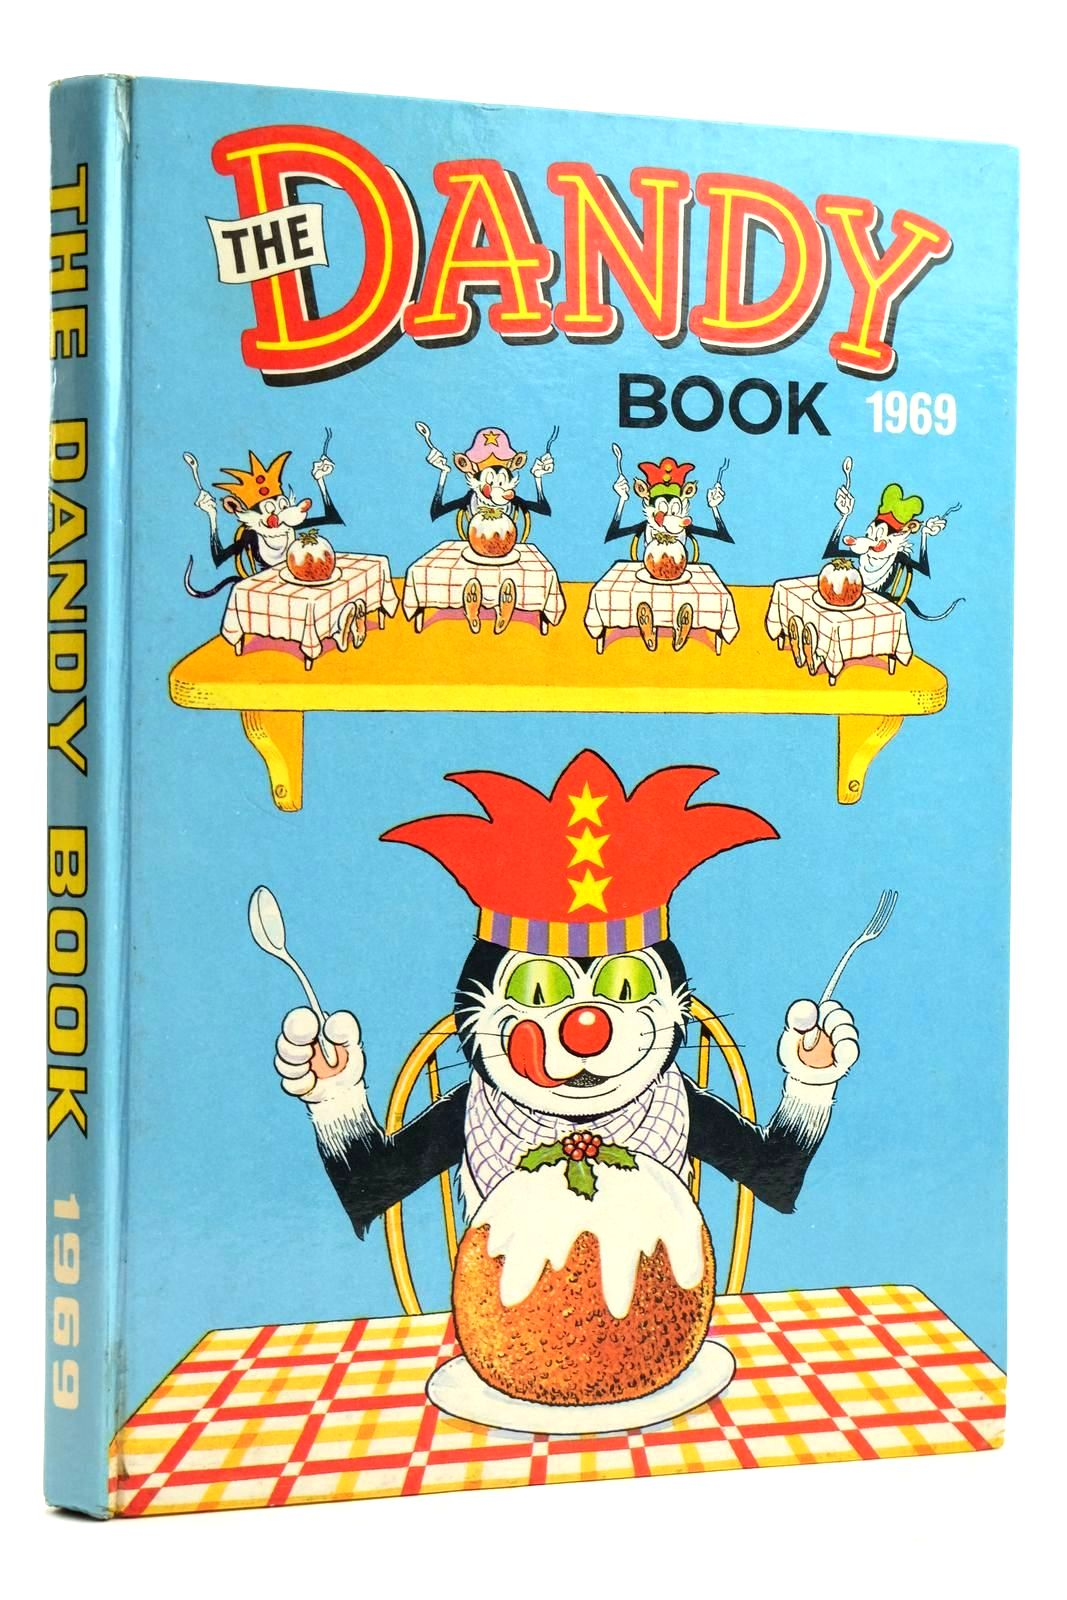 Photo of THE DANDY BOOK 1969 published by D.C. Thomson & Co Ltd. (STOCK CODE: 2131964)  for sale by Stella & Rose's Books